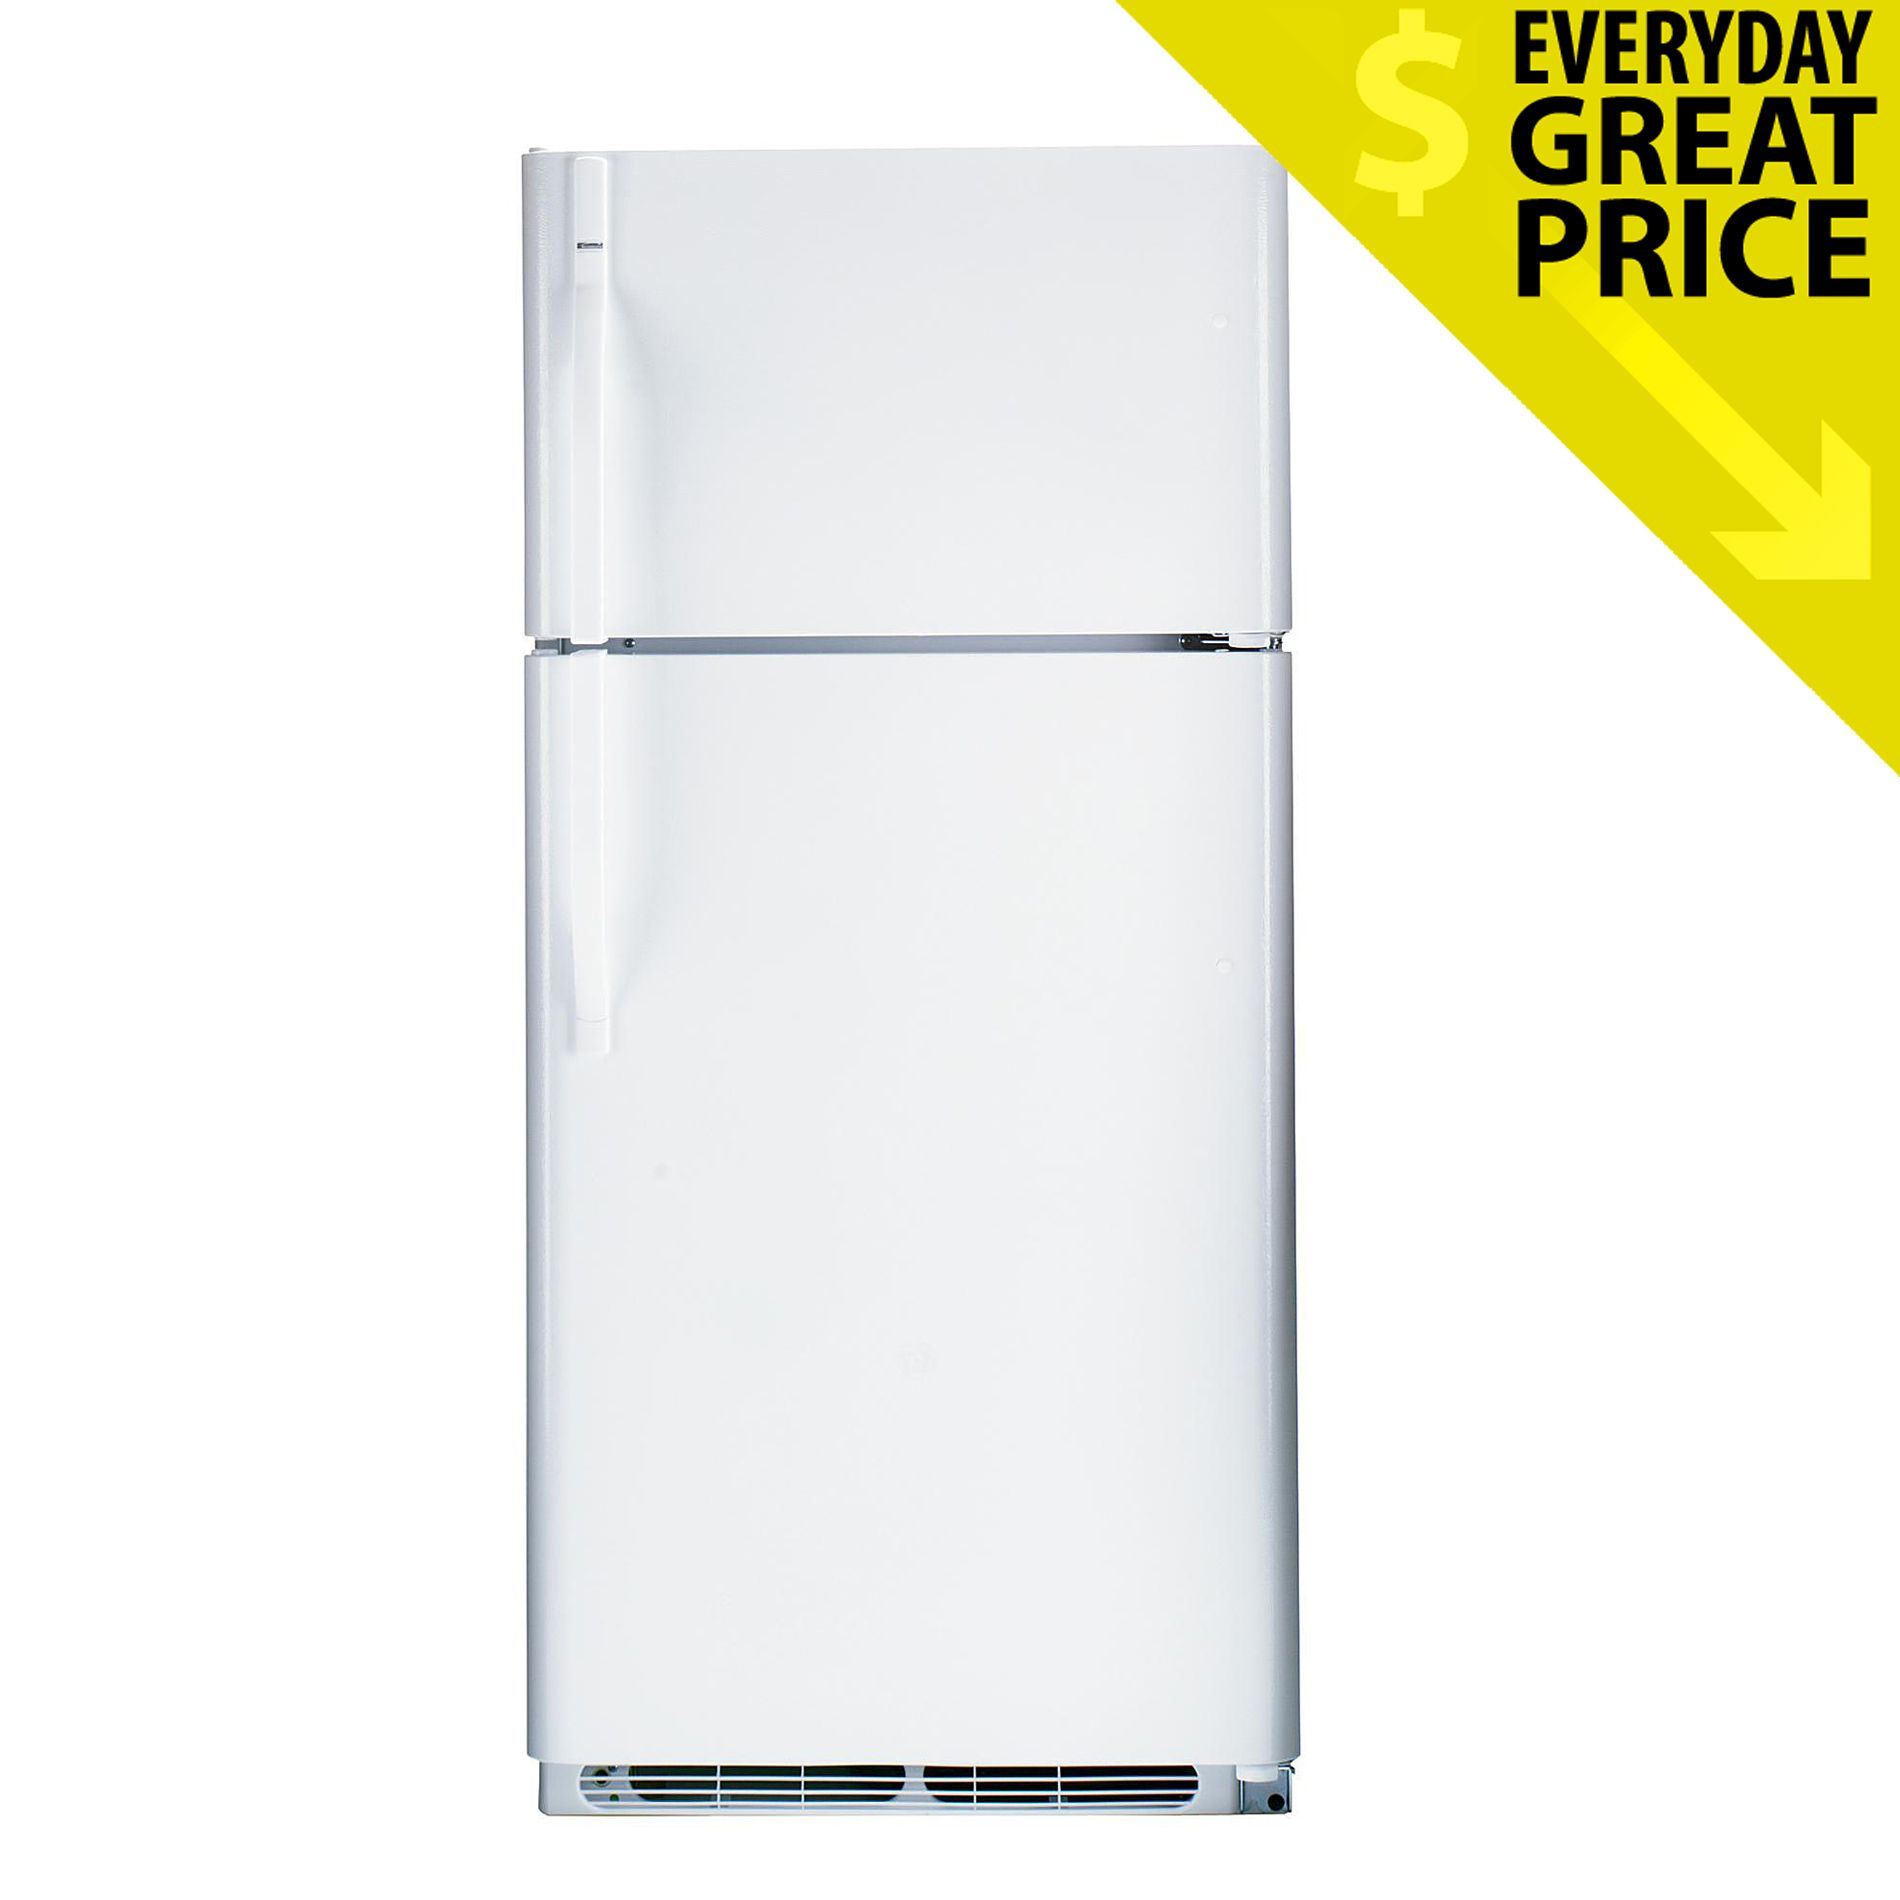 Kmart Freezer Kenmore Top Freezer Refrigerator 18 2 Cu Ft 6580 Sears